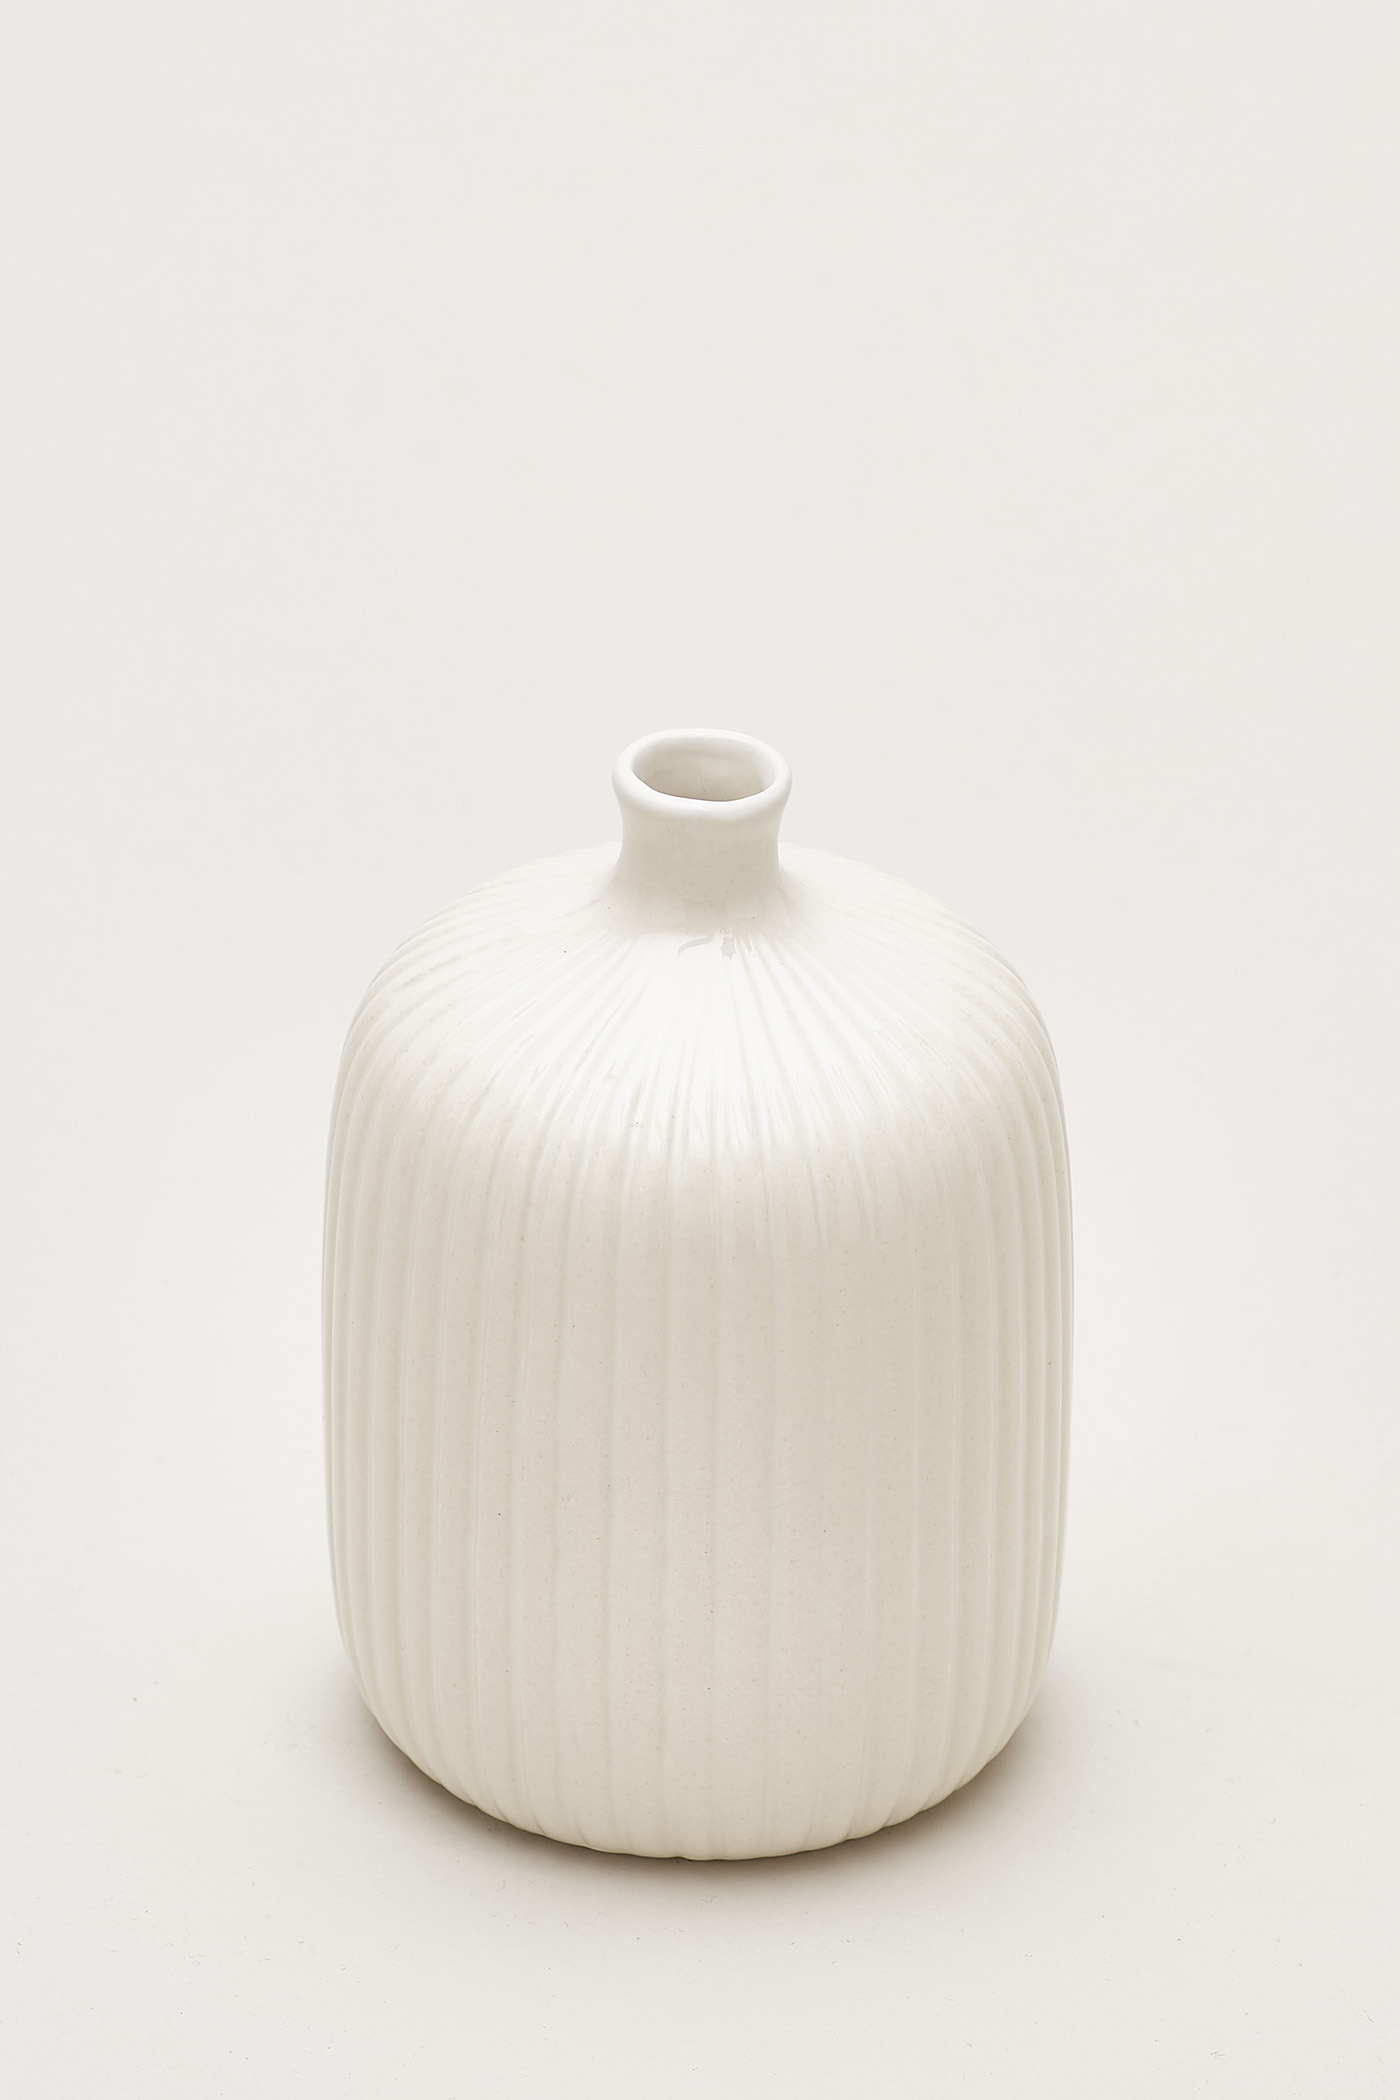 Nilsen Reeded Medium Round Vase